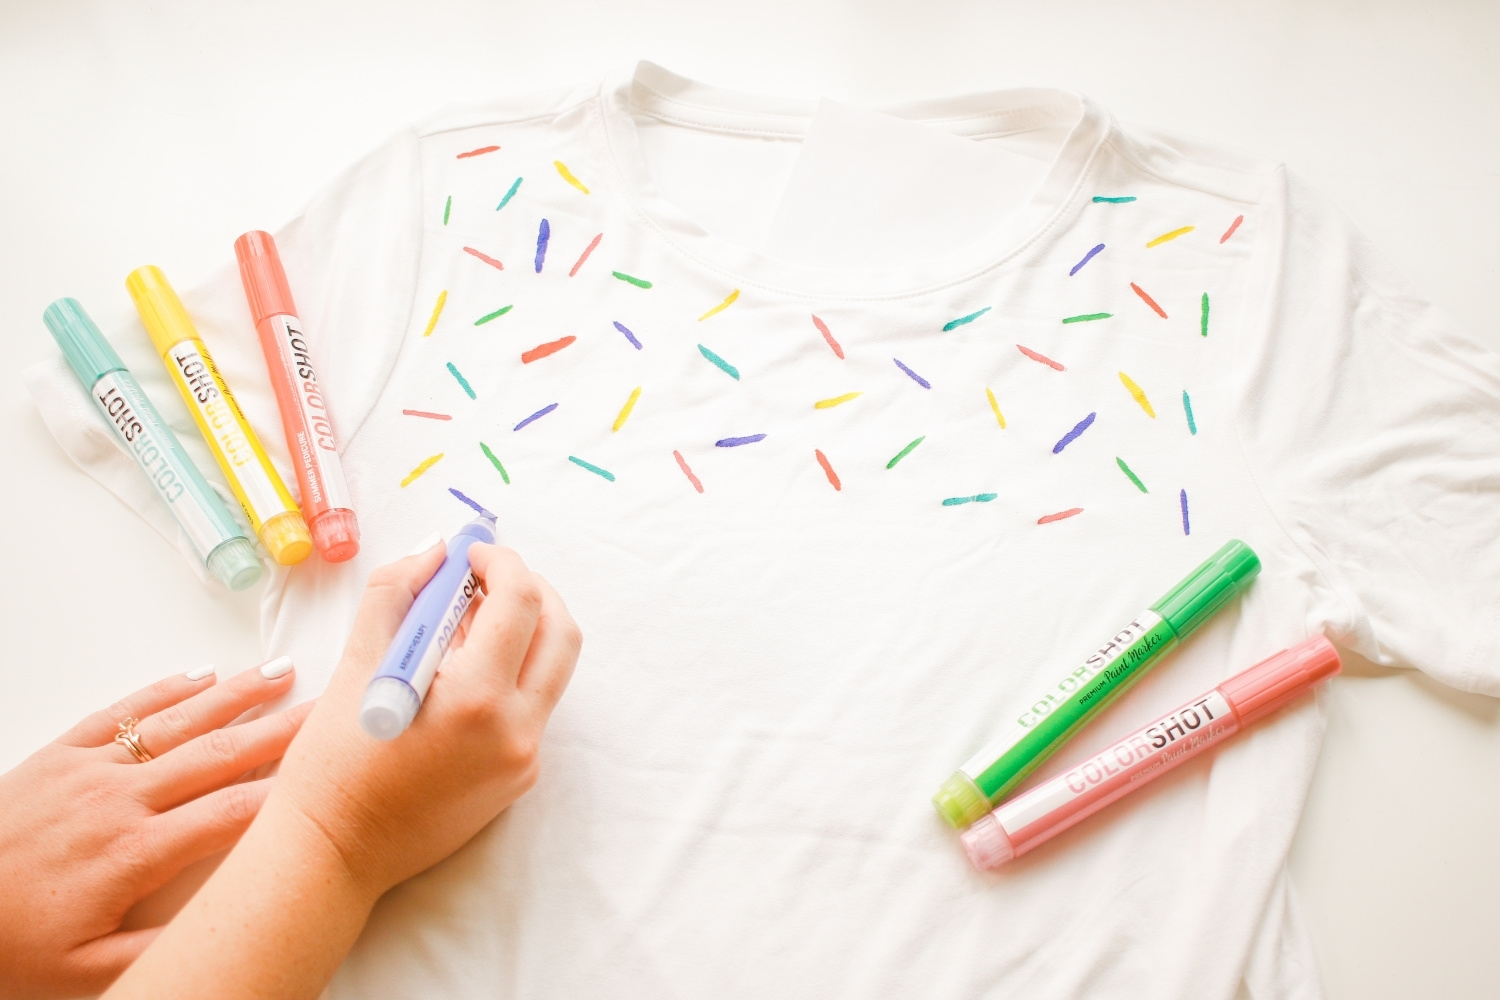 Draw sprinkles on T-shirt